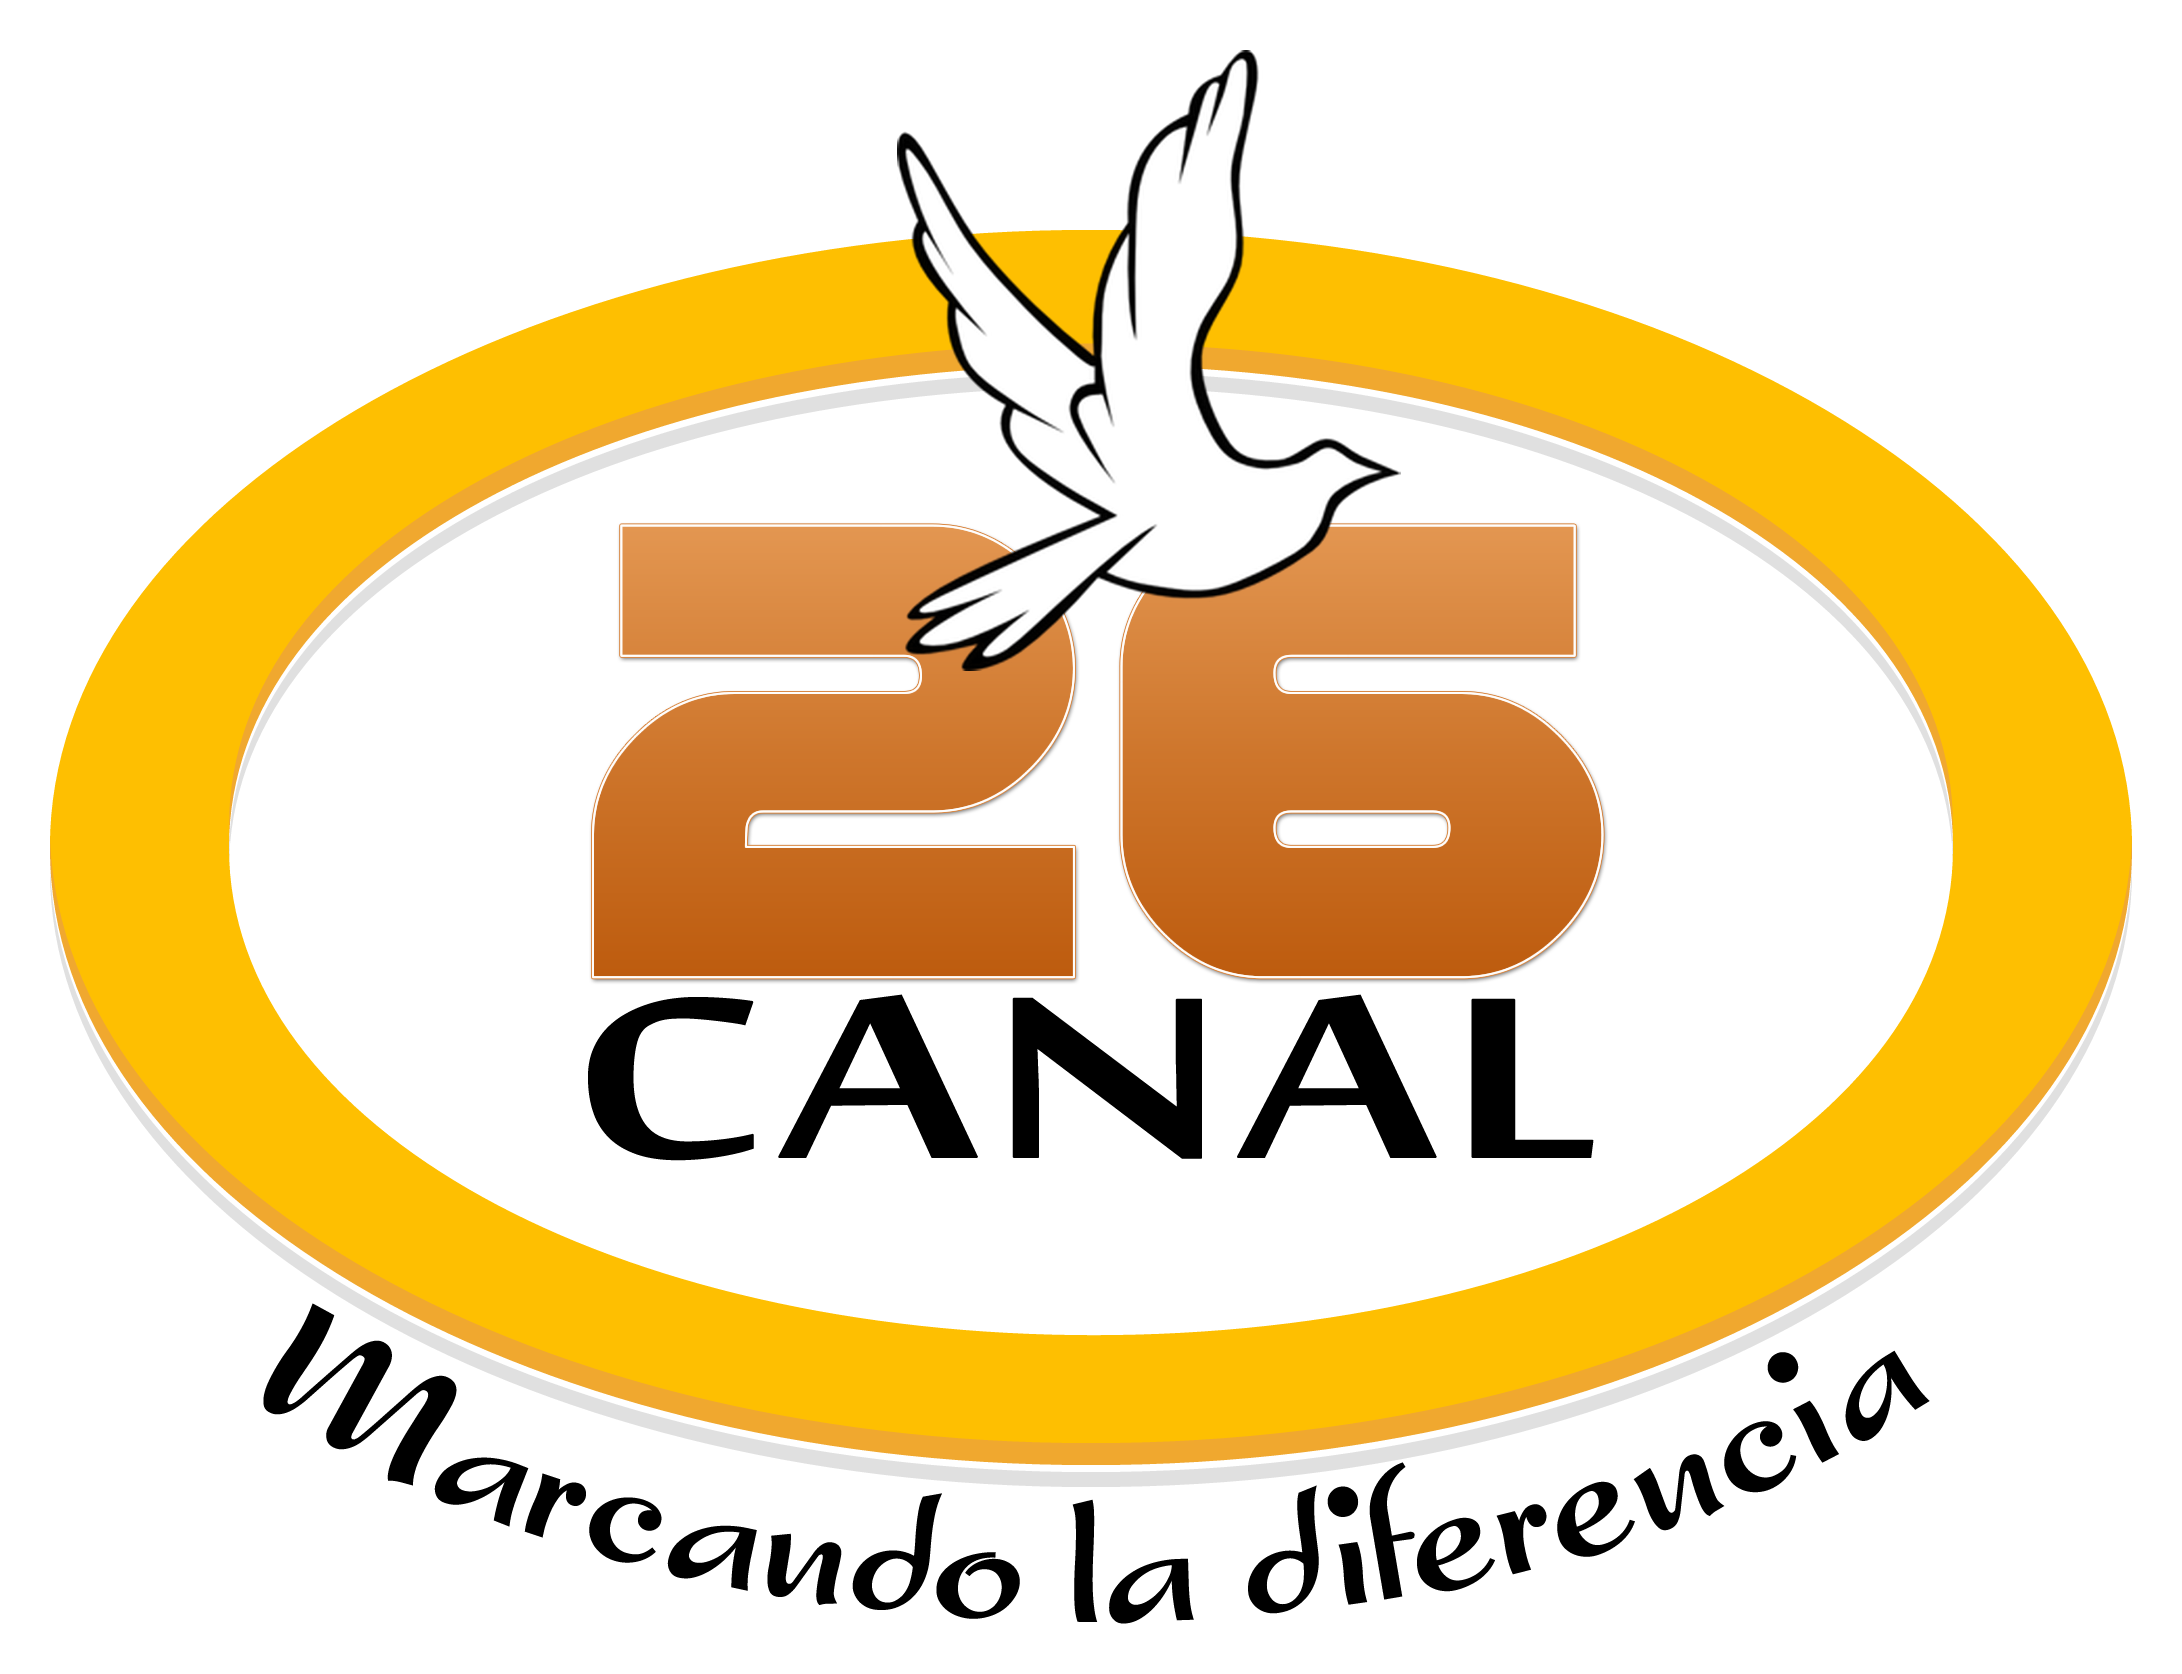 Canal26.org